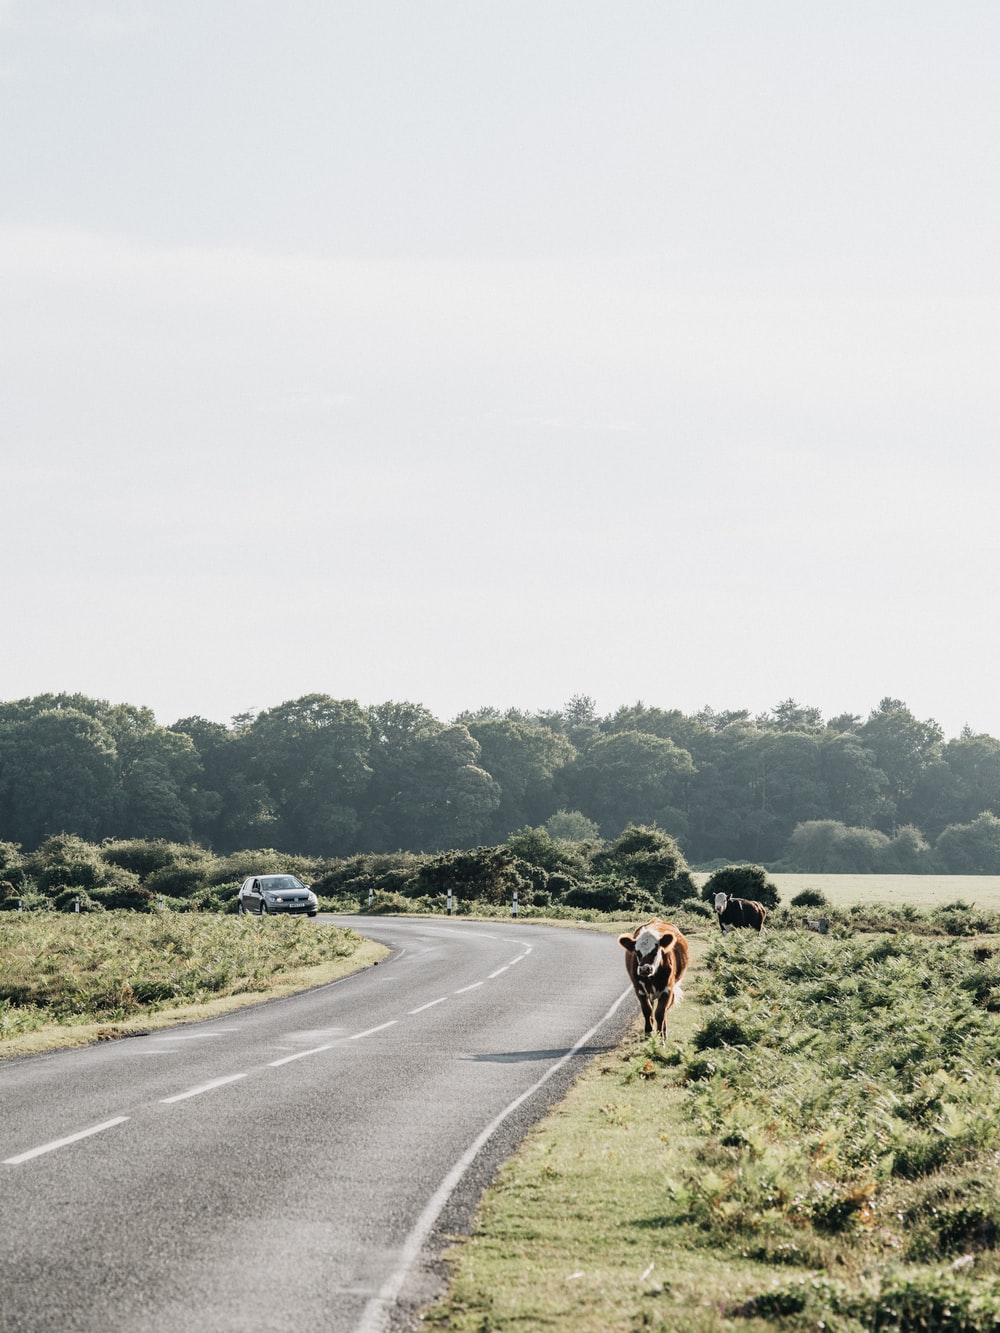 2 people riding horses on road during daytime